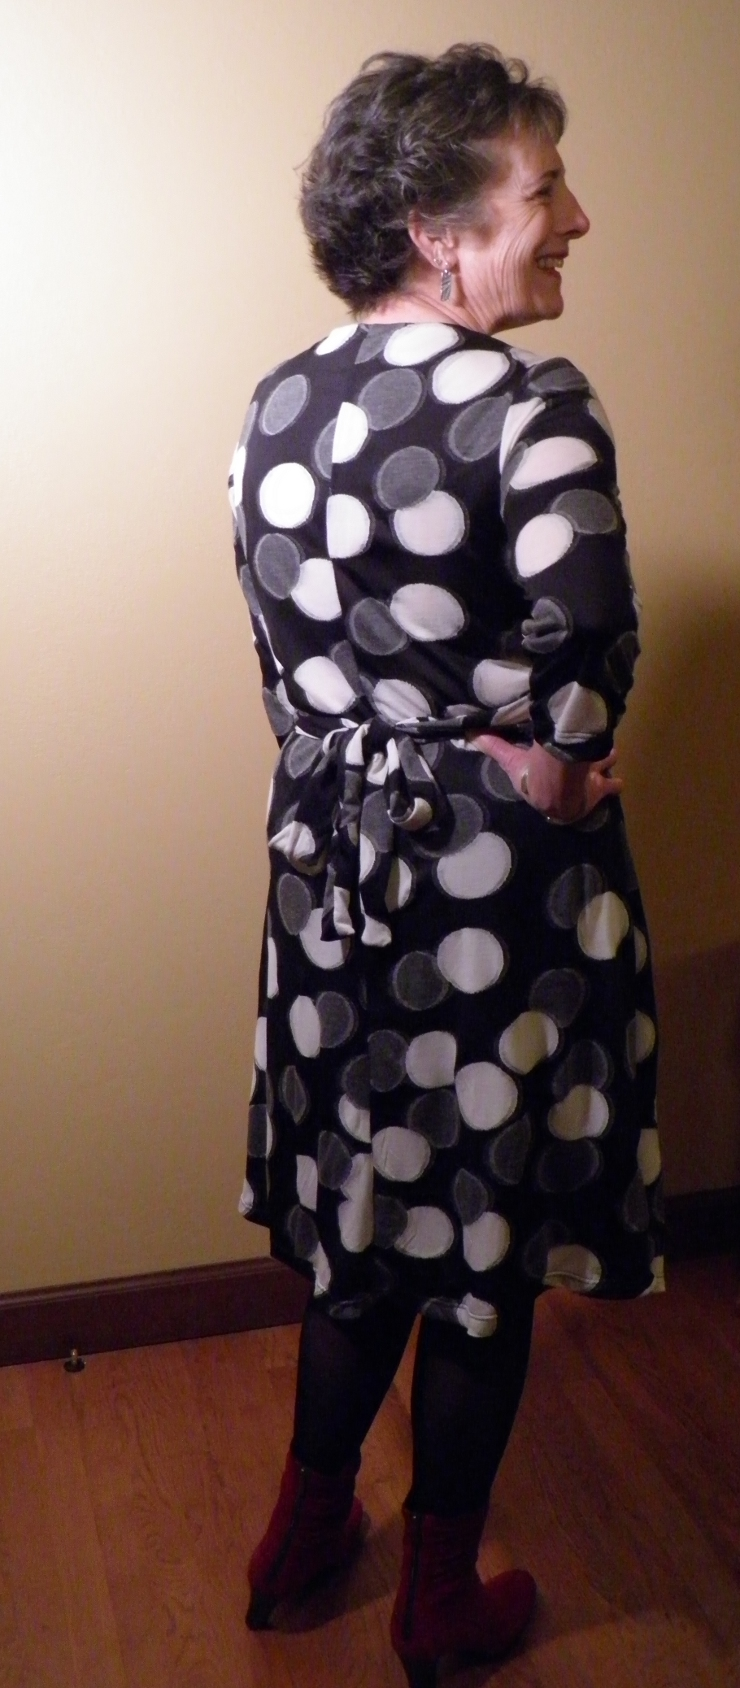 BackViewBlackDotKnitDress